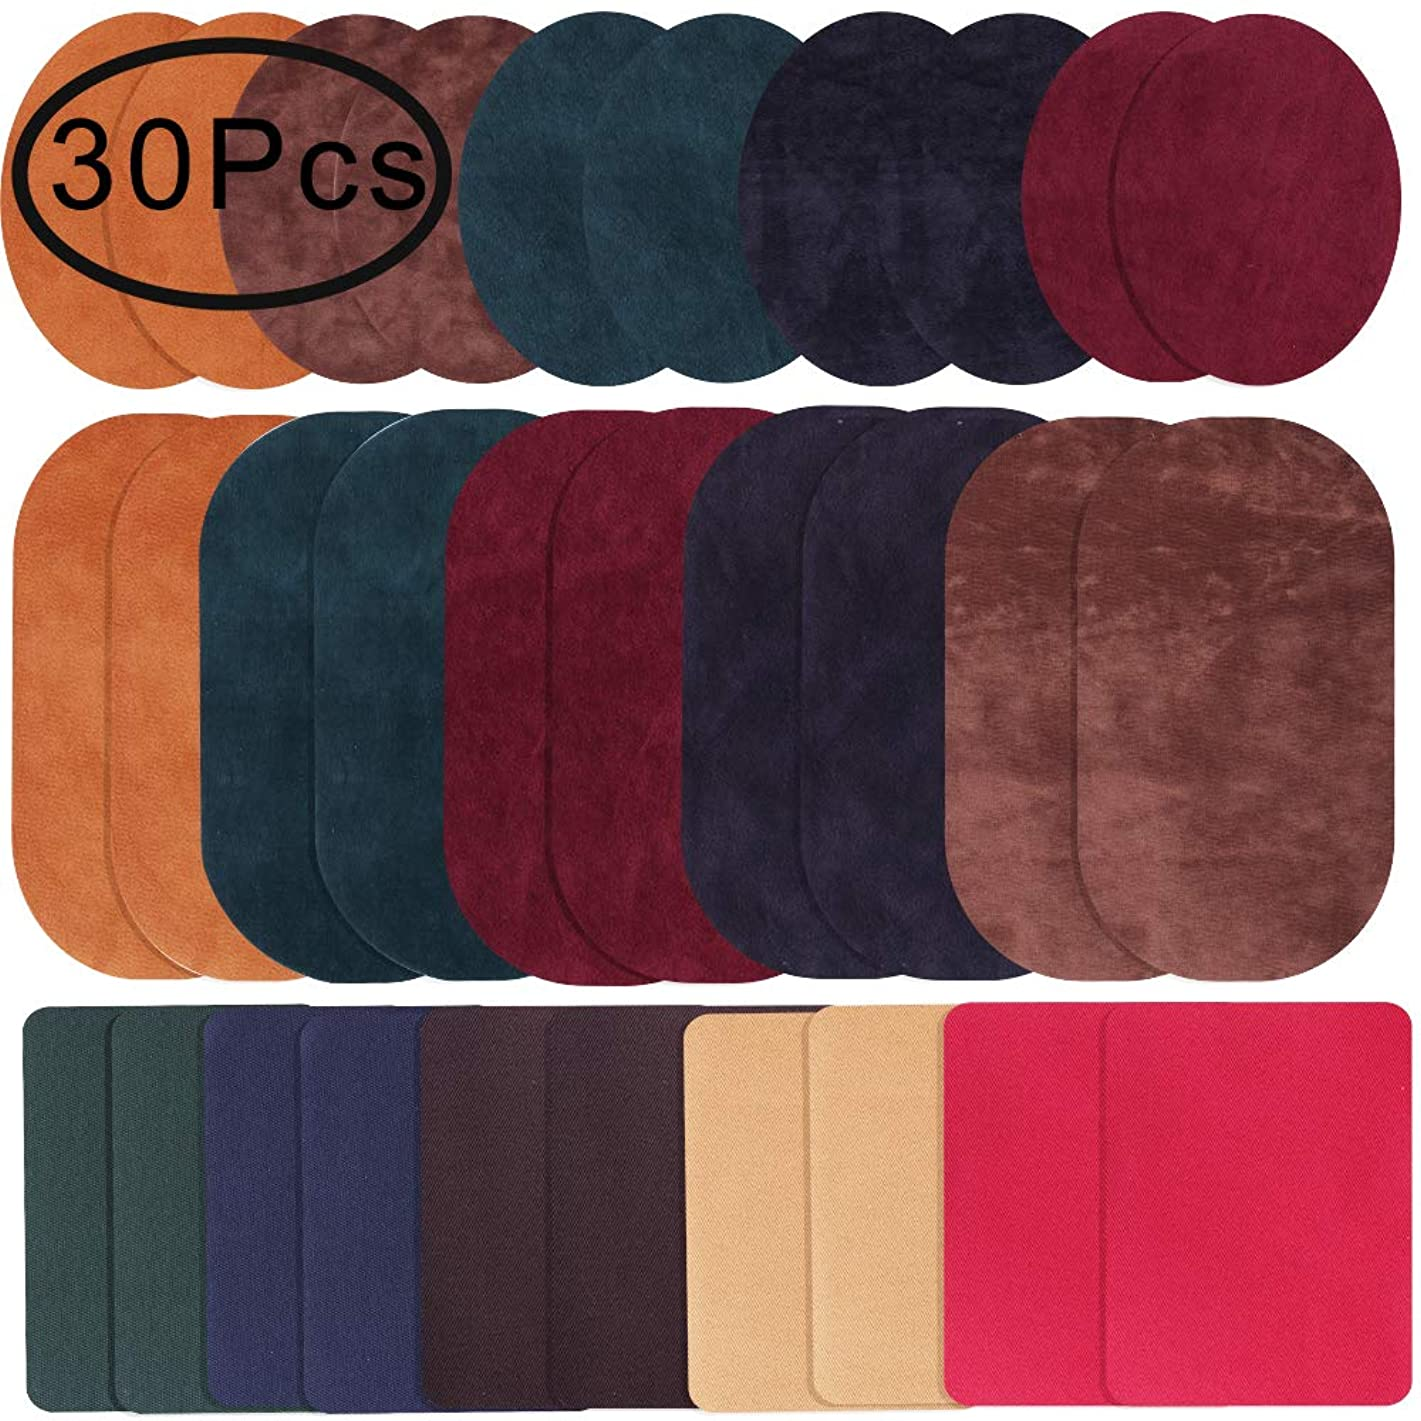 Iron On Patches, Outee 10 Colors 30 Pcs Fabric Patches 7/6/5 Inch Iron On Repair Kit for Clothing Jeans